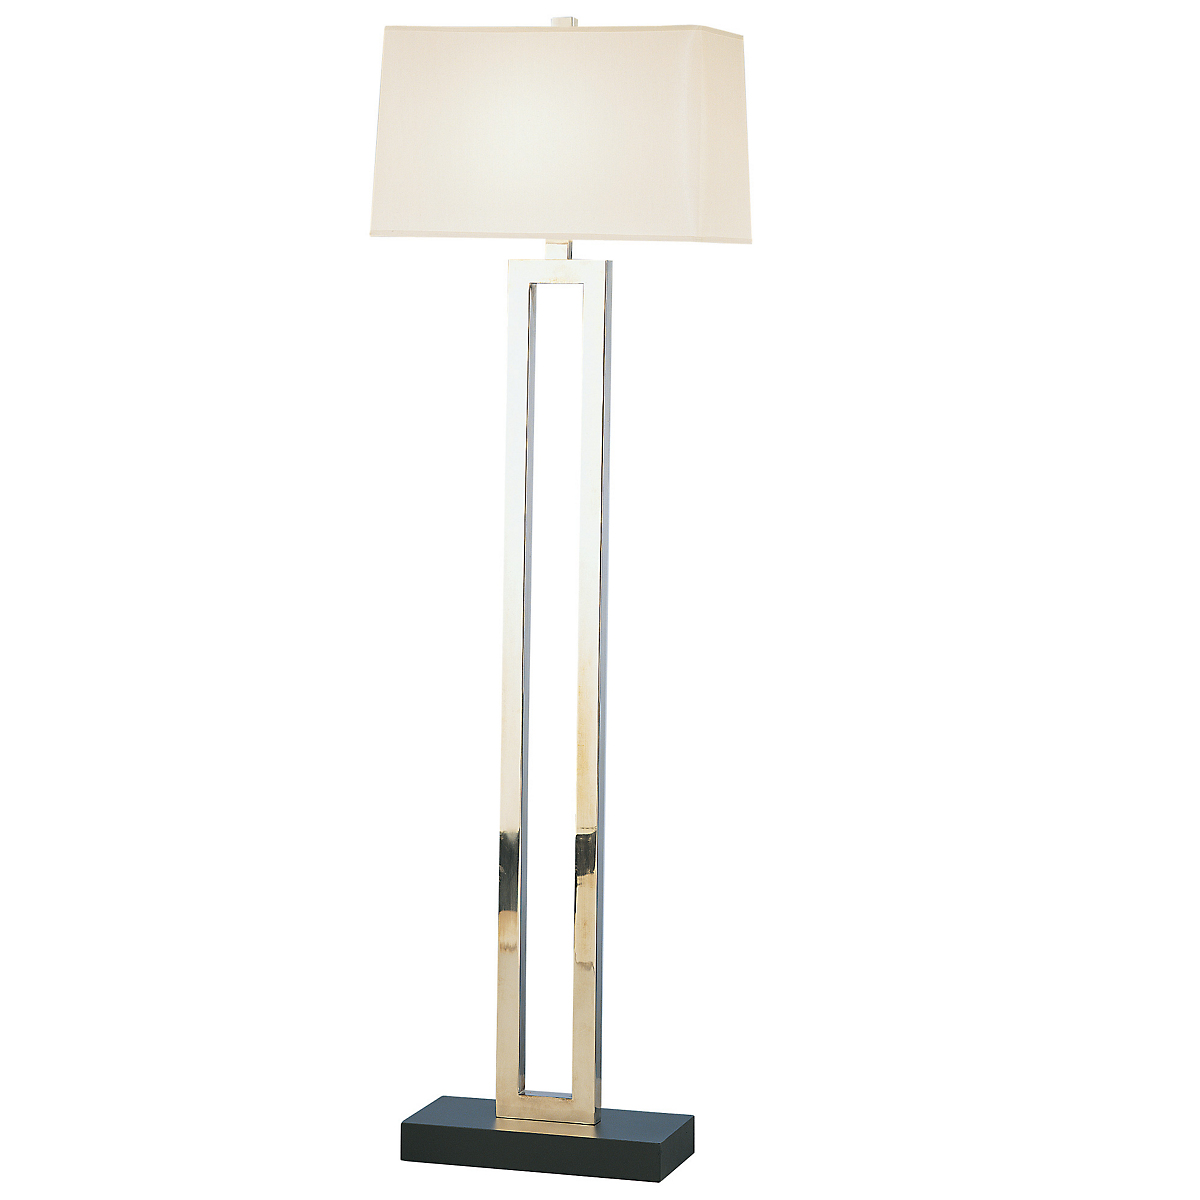 Dionne Floor Lamp, Brass